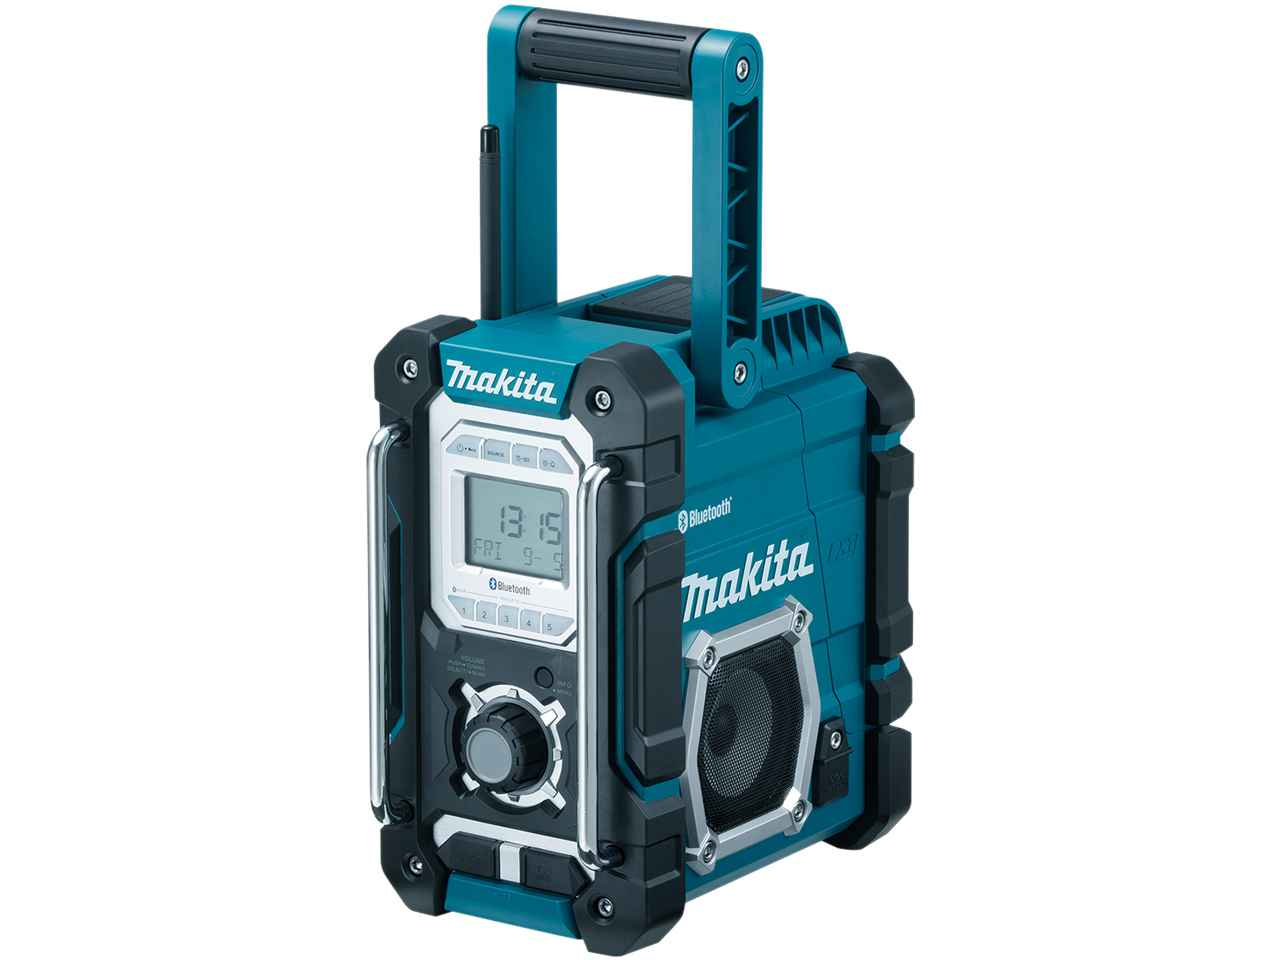 makita dmr106 bluetooth am fm job site radio ebay. Black Bedroom Furniture Sets. Home Design Ideas